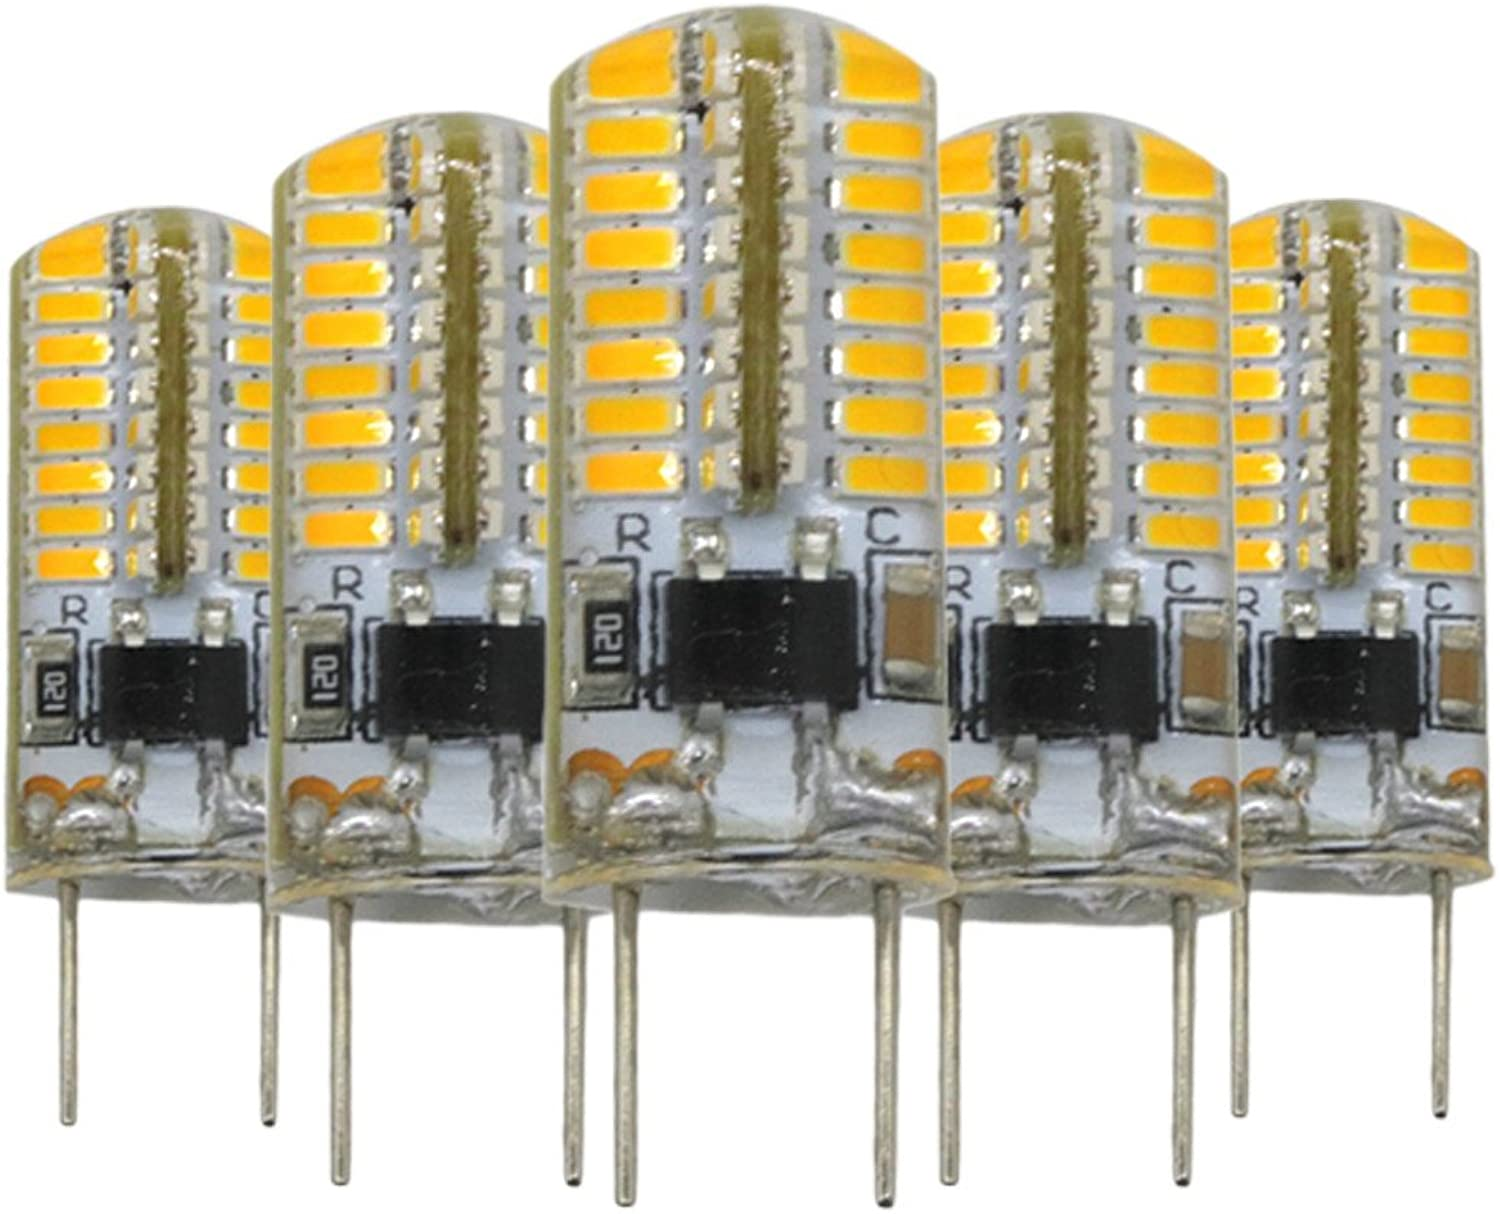 LL G8 64 LED 3014SMD 3 Watts 200300 Lm Warm White Dimmable Decorative LED Bipin Lights AC 110 V (5PCS) (color   Warm White)